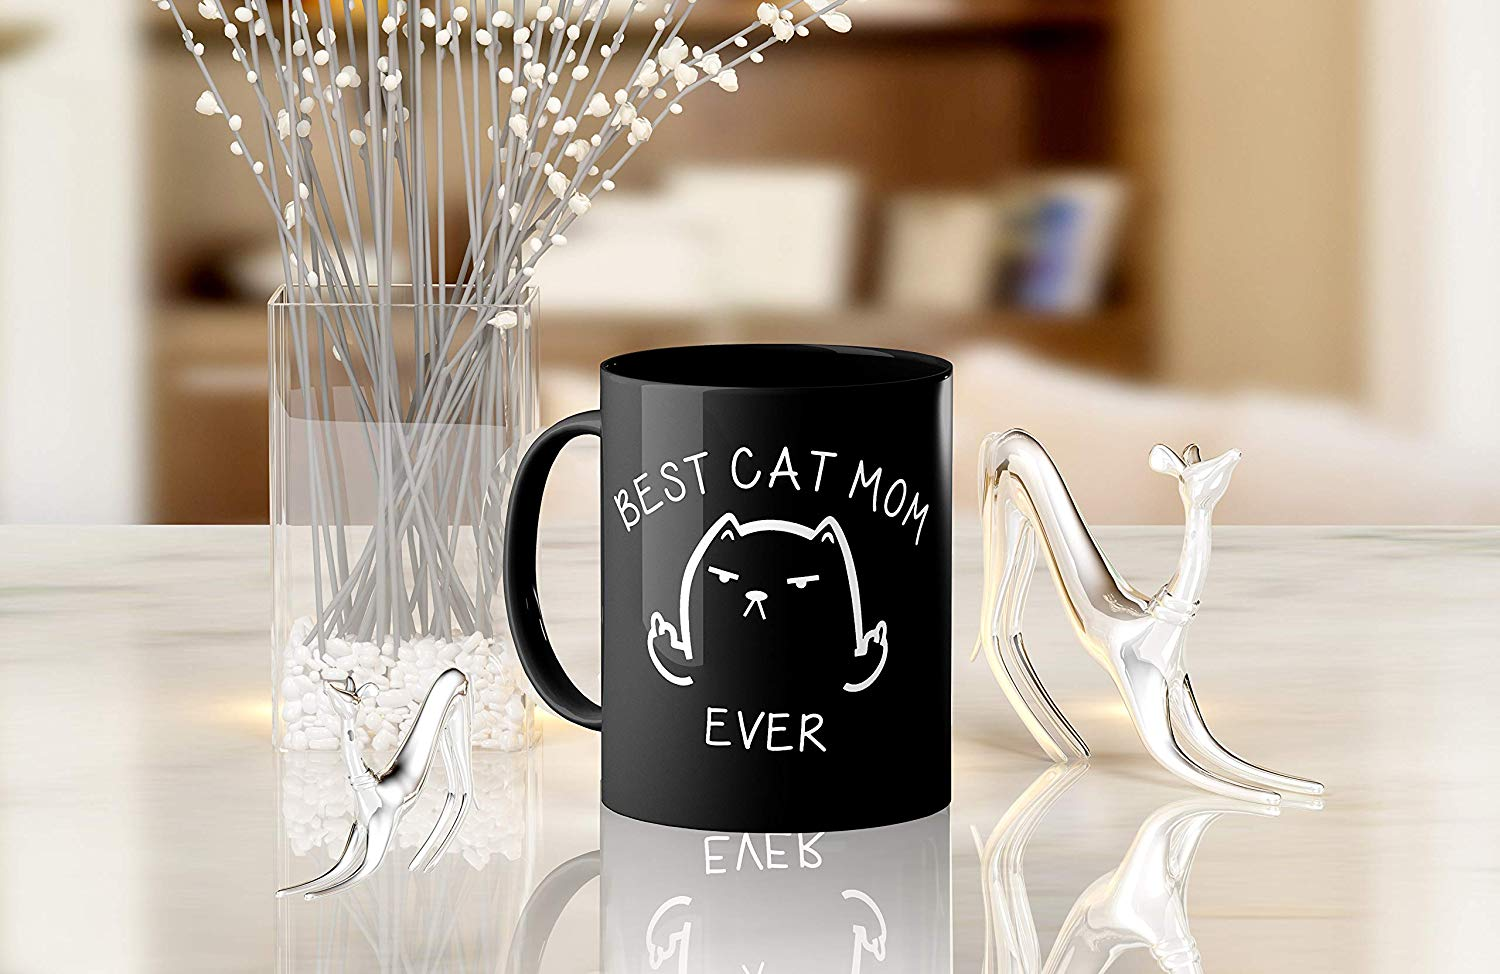 Best Cat Mom Ever Funny Coffee Mug Cat Middle Finger 11 Oz Birthday Gift For MotherMom Or Wife B079FYPL3B 7